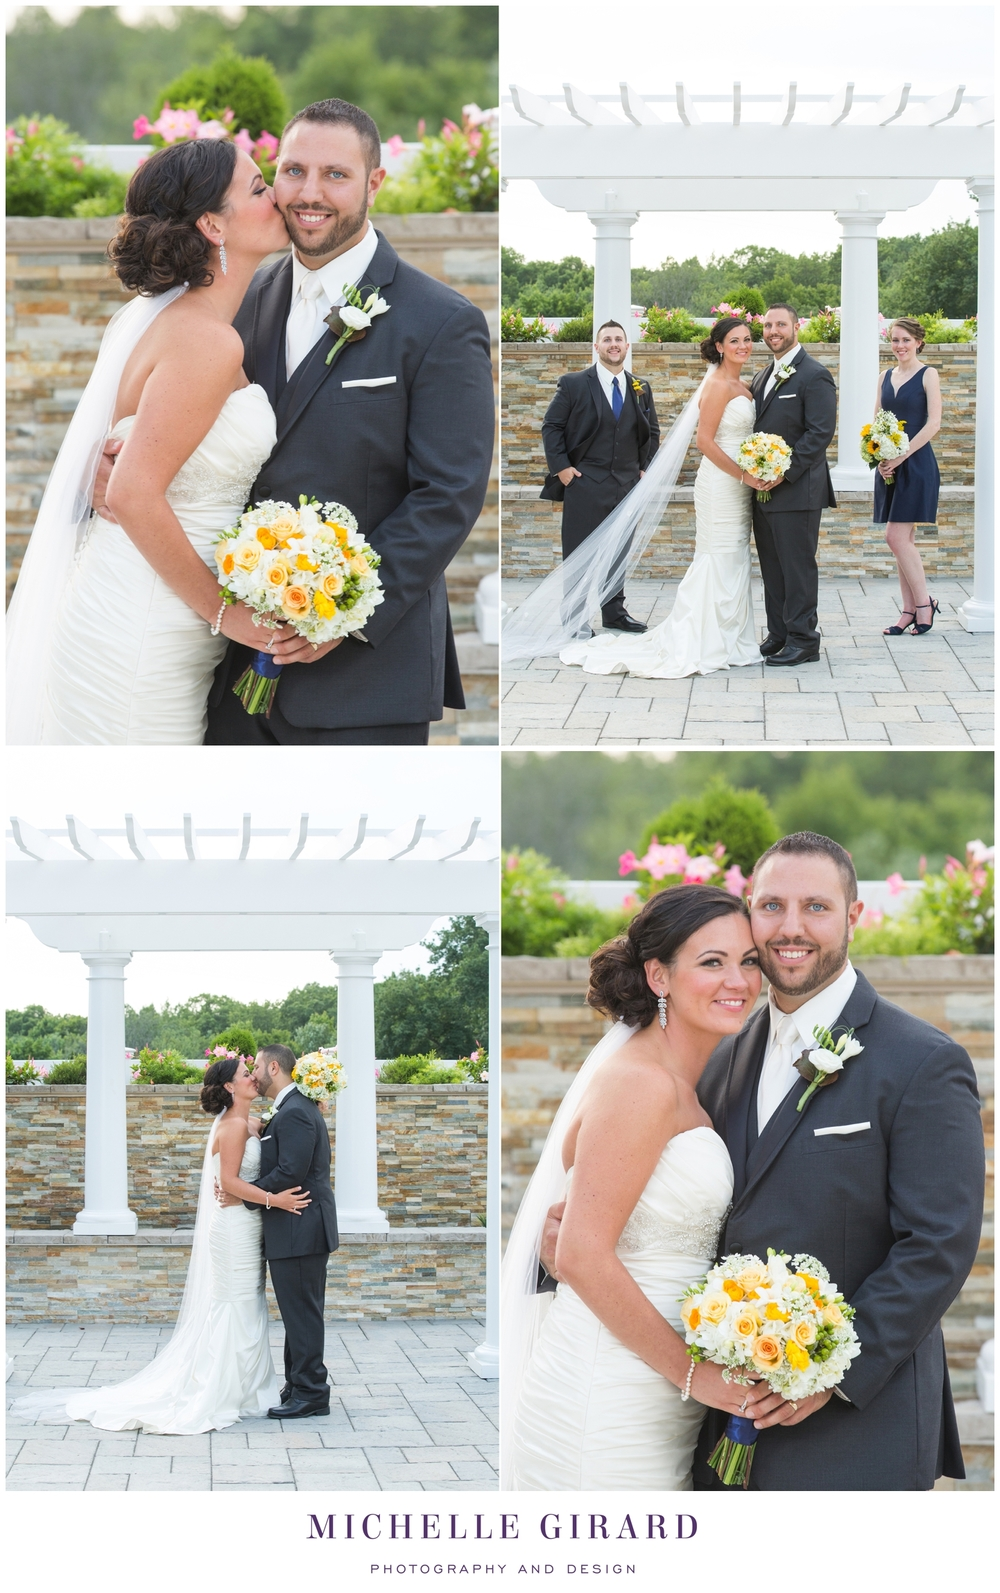 LaBellaVista_SummerWedding_MichelleGirardPhotography04.jpg